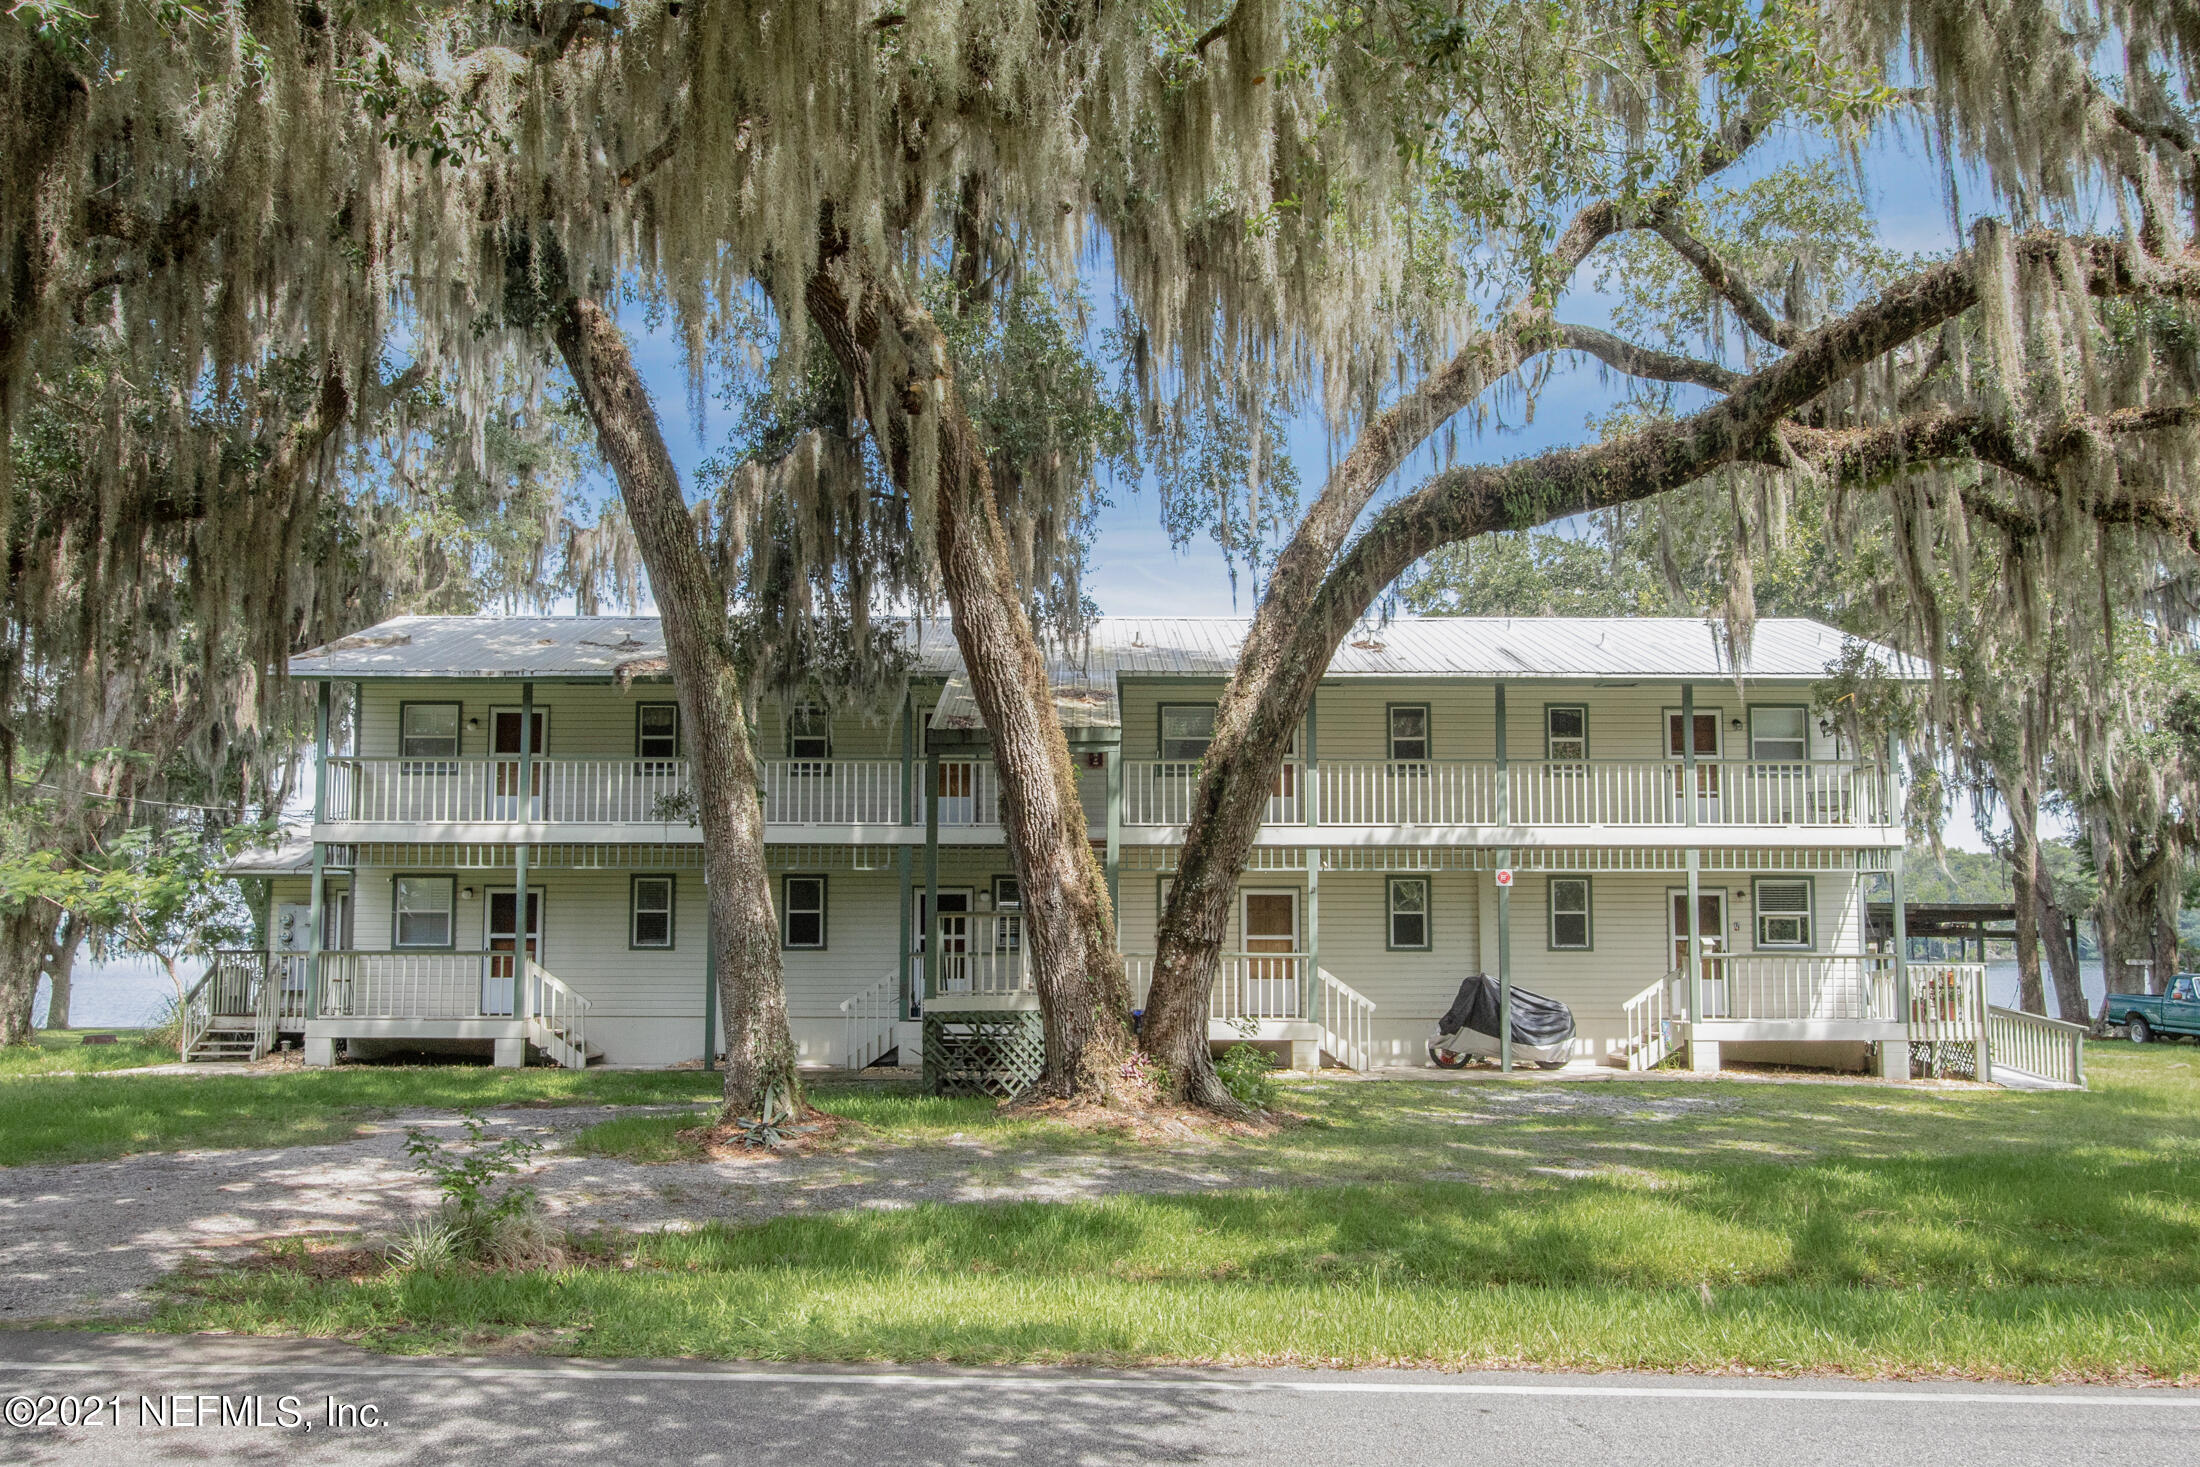 13535 COUNTY RD 13, ST AUGUSTINE, FLORIDA 32092, 1 Bedroom Bedrooms, ,1 BathroomBathrooms,Residential,For sale,COUNTY RD 13,1122515